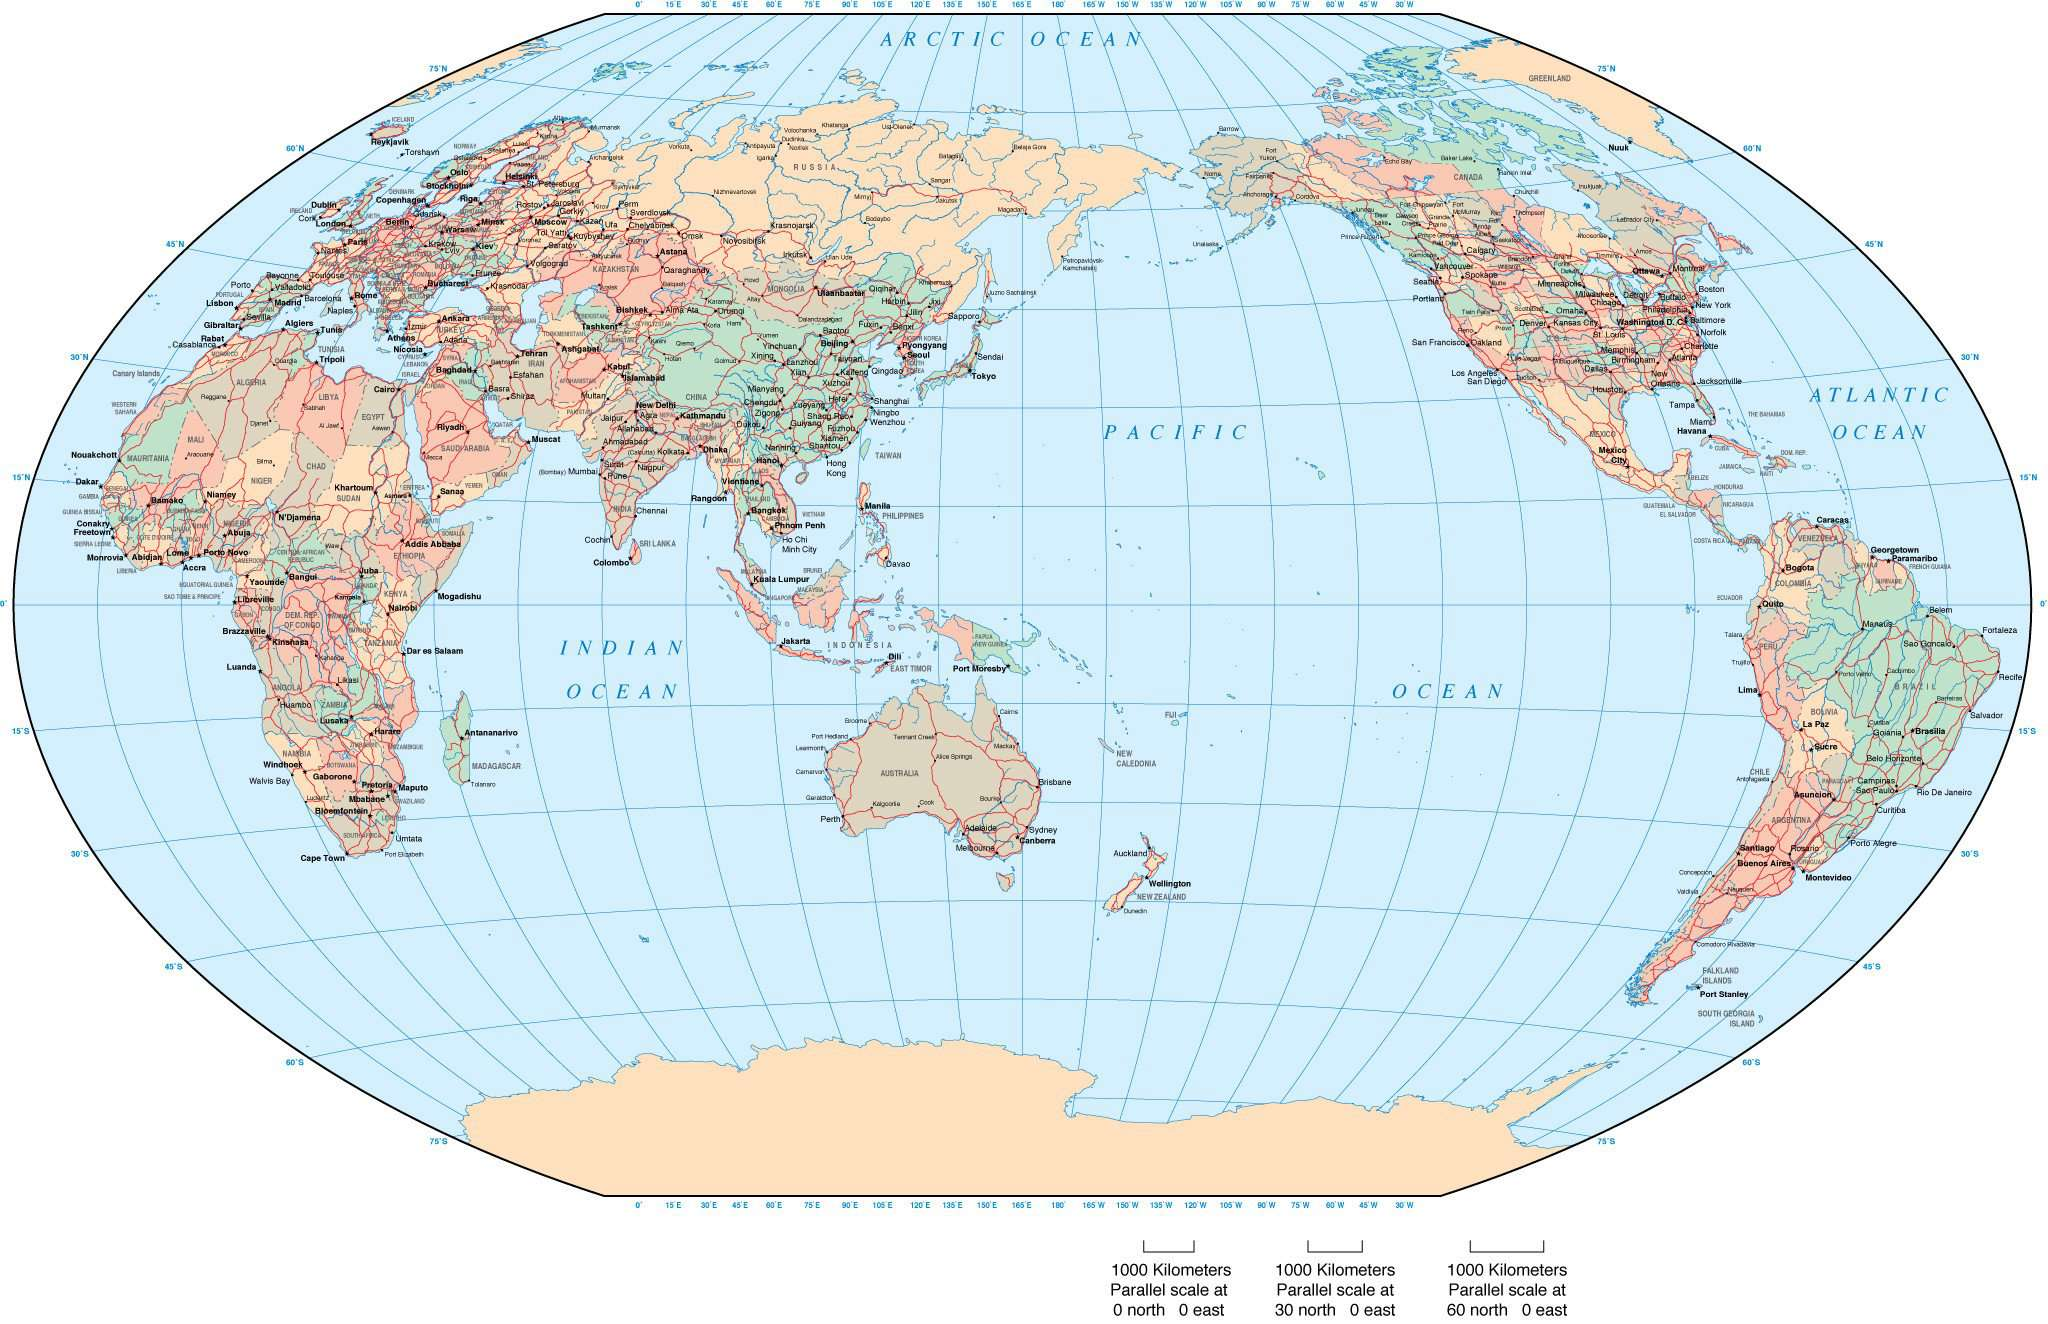 World Map With Australia.World Map Asia Australia Centered Winkel Tripel Projection